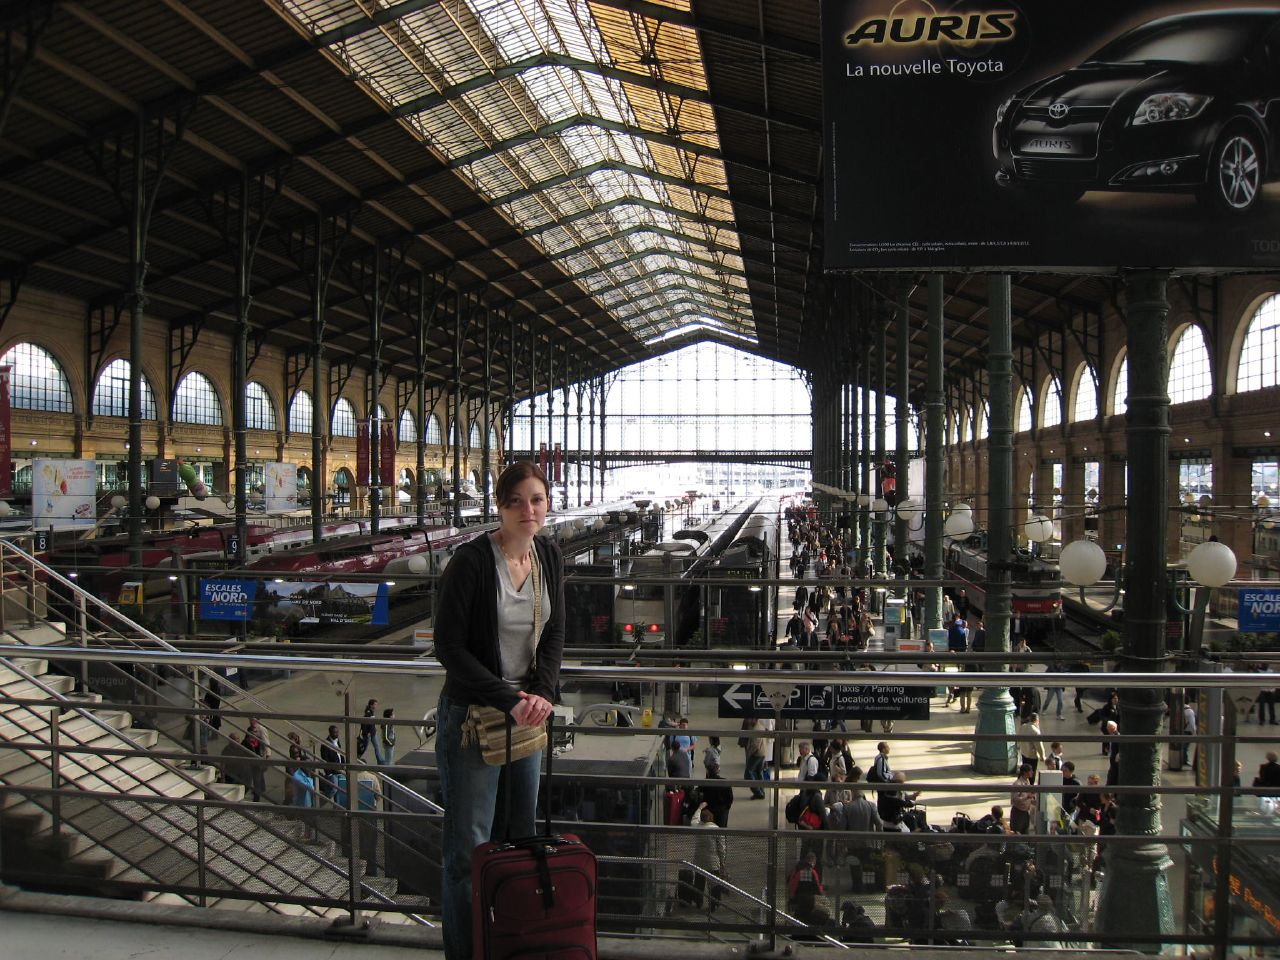 paris gare du nord train station a photo on flickriver. Black Bedroom Furniture Sets. Home Design Ideas